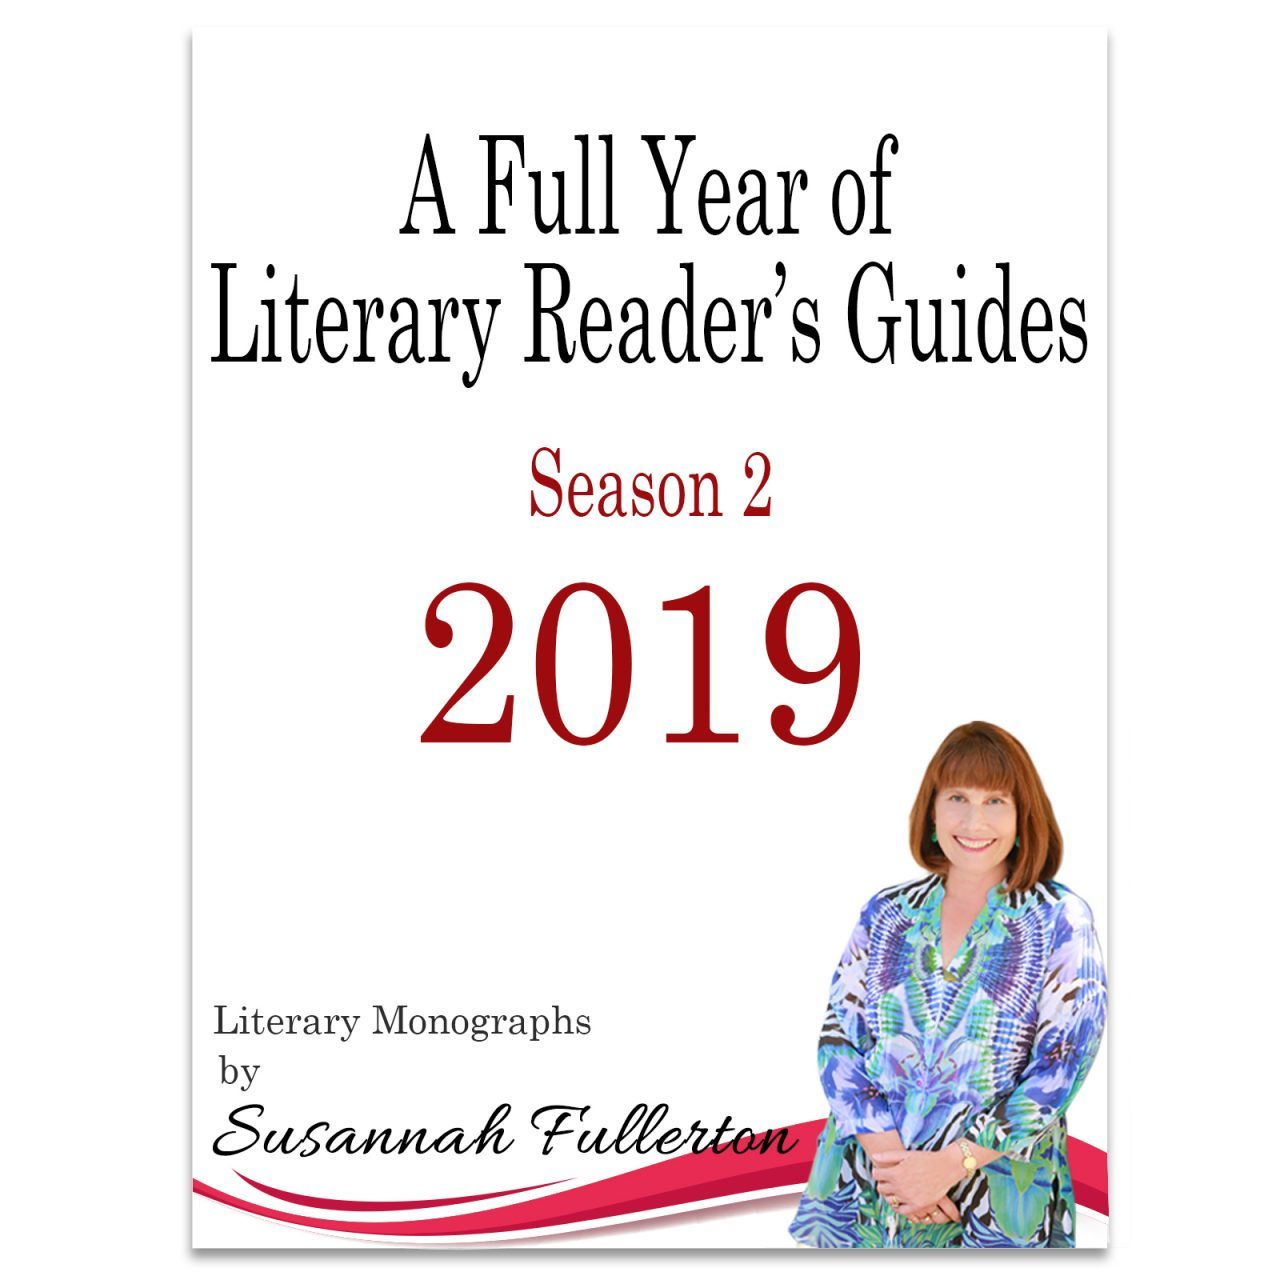 A Full Year of Literary Reader's Guides 2019